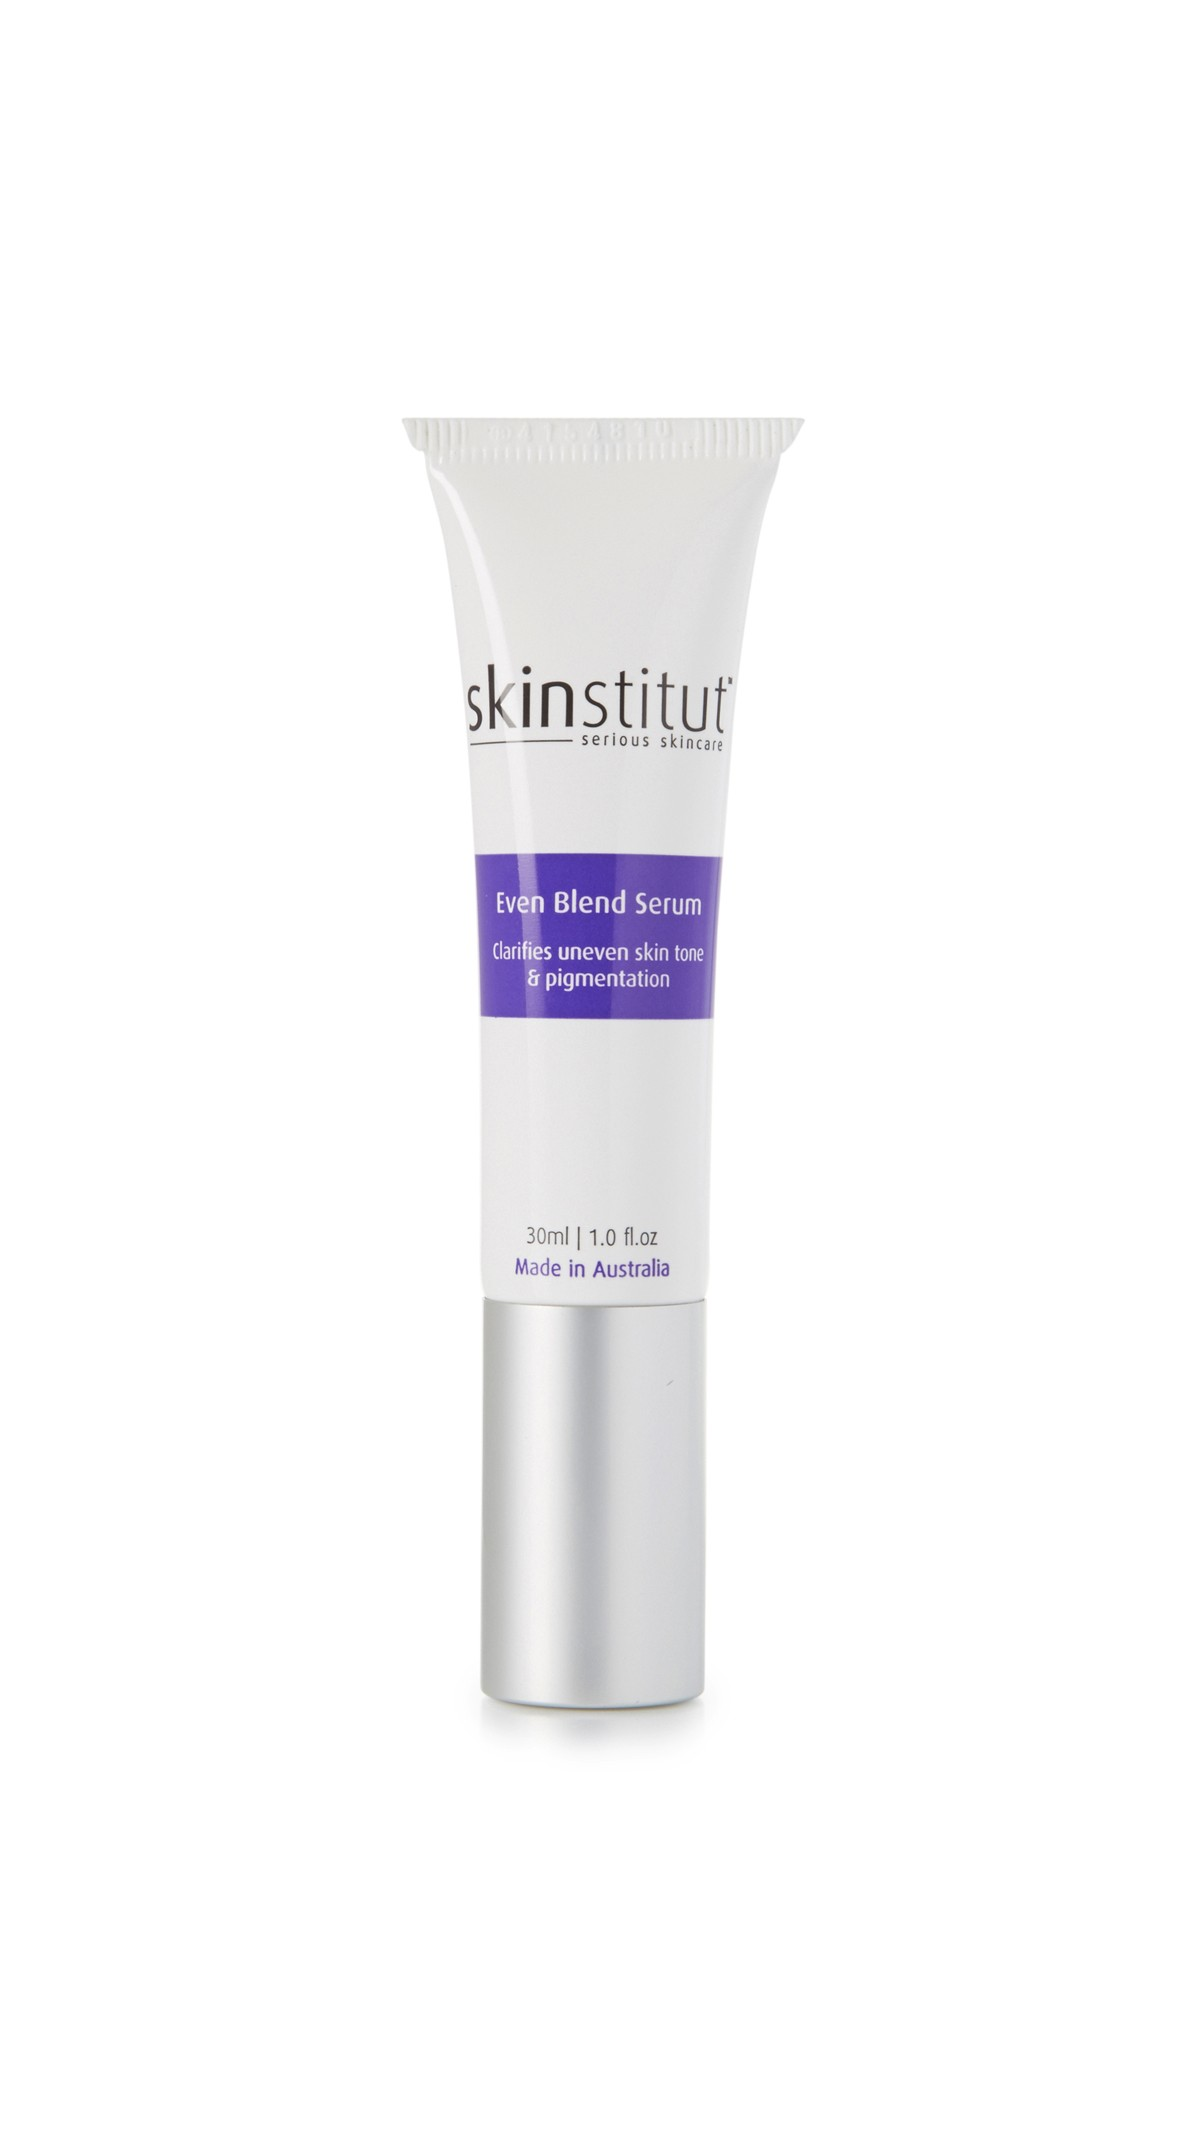 SKINSTITUT - Even Blend Serum 30ML